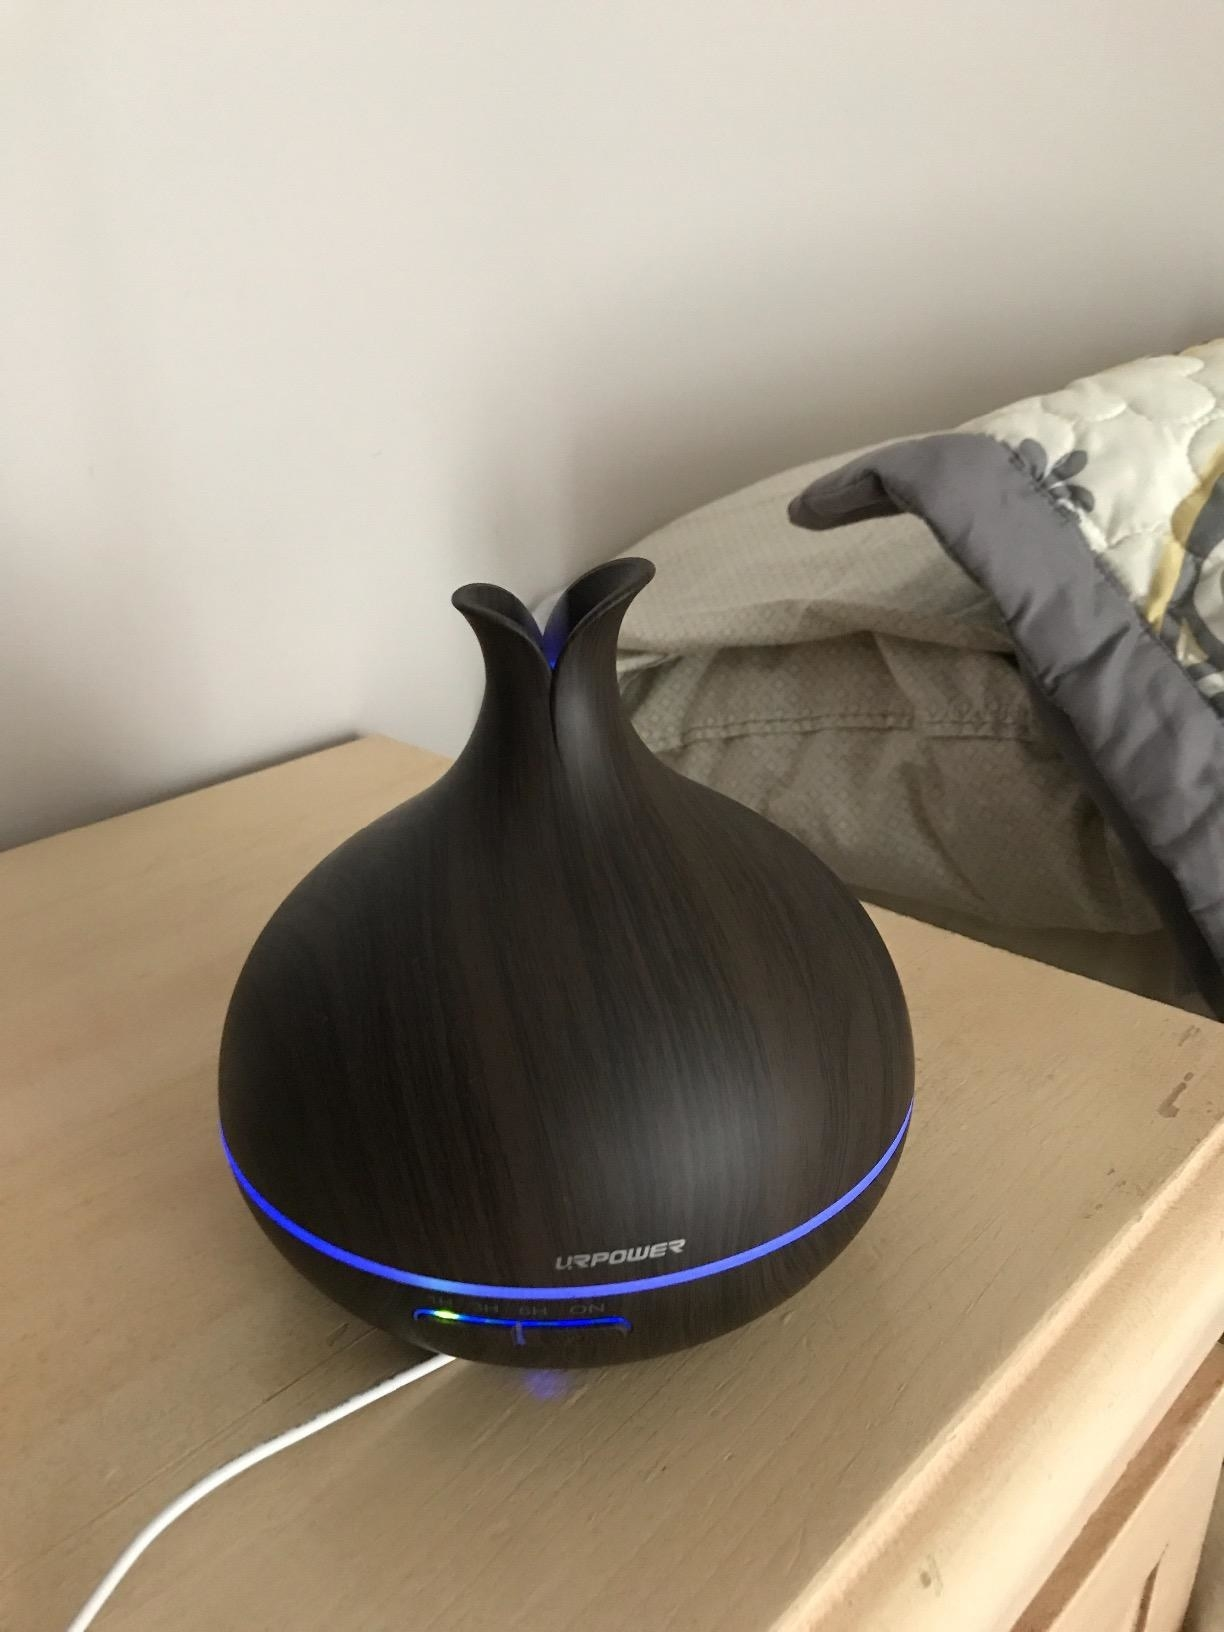 A reviewer showing the diffuser which is round on the bottom and has a narrow opening on top to emit steam